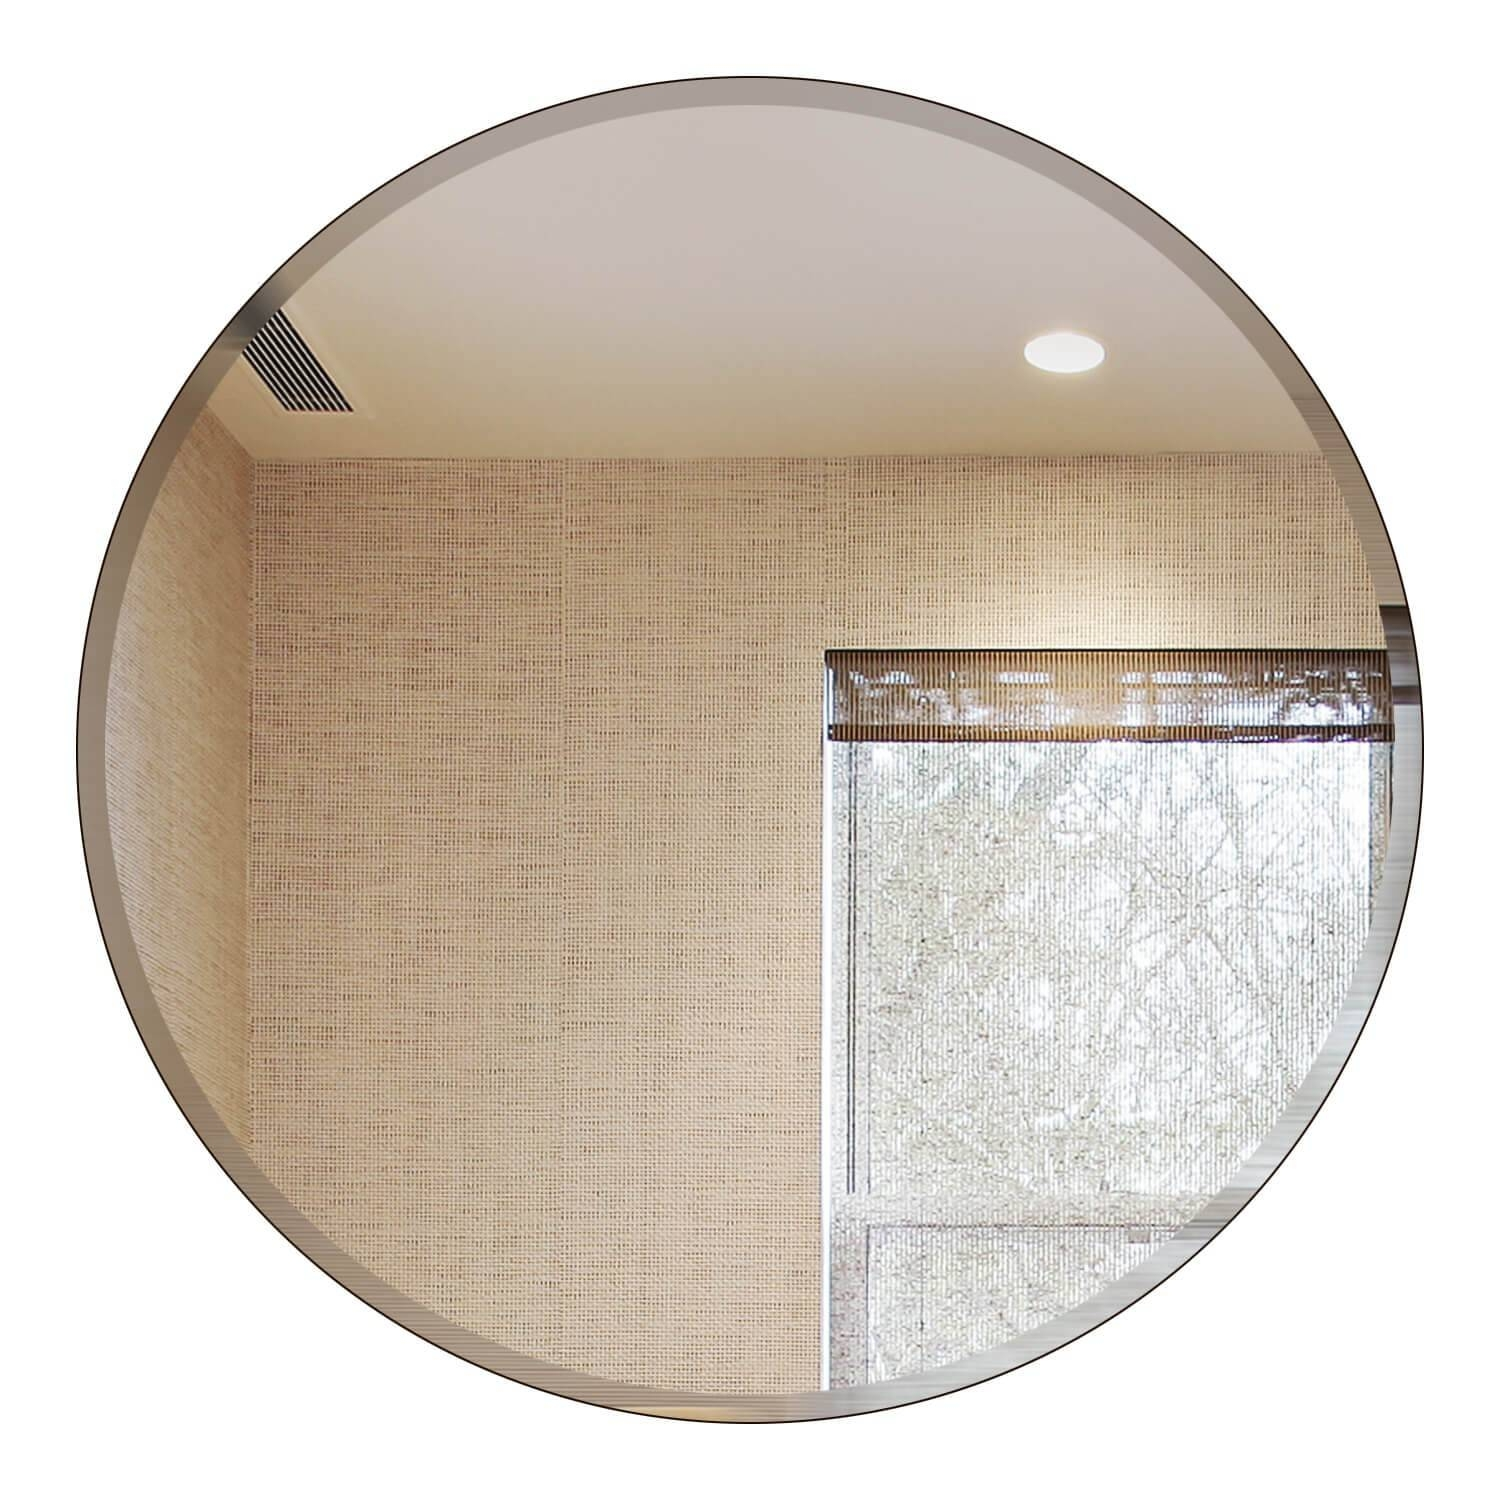 Frameless Round Wall Mirrors, Bathroom Mirror, Discounted Price Mirror intended for Round Bevelled Mirrors (Image 8 of 25)